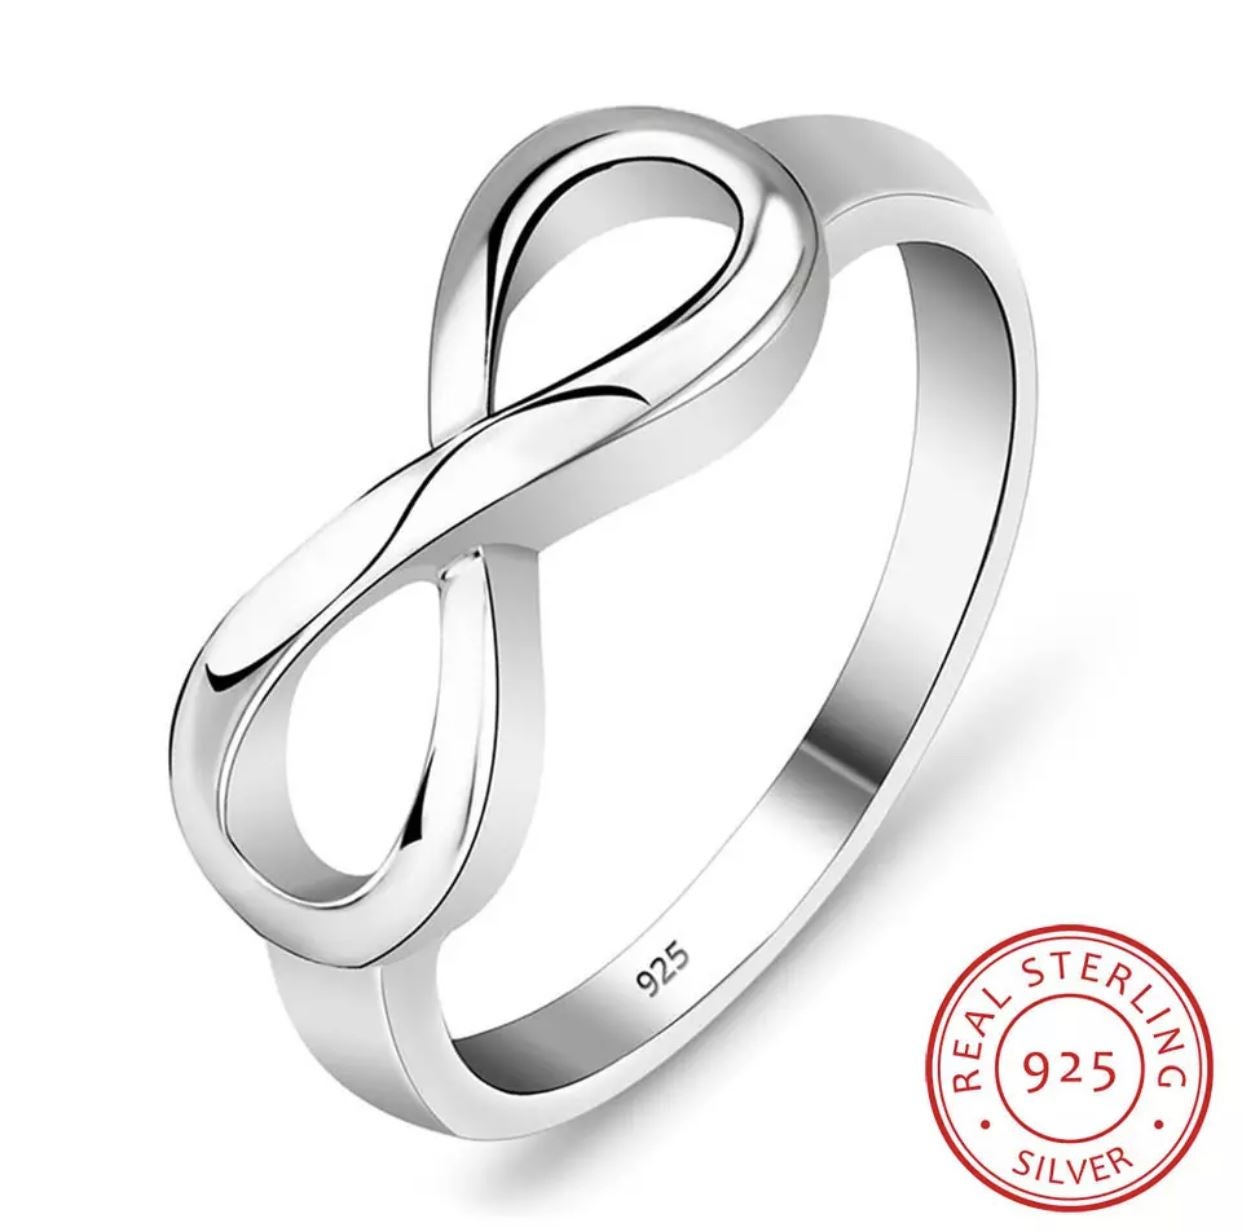 925 INFINTY ETERNITY WEDDING RING SIZE 6